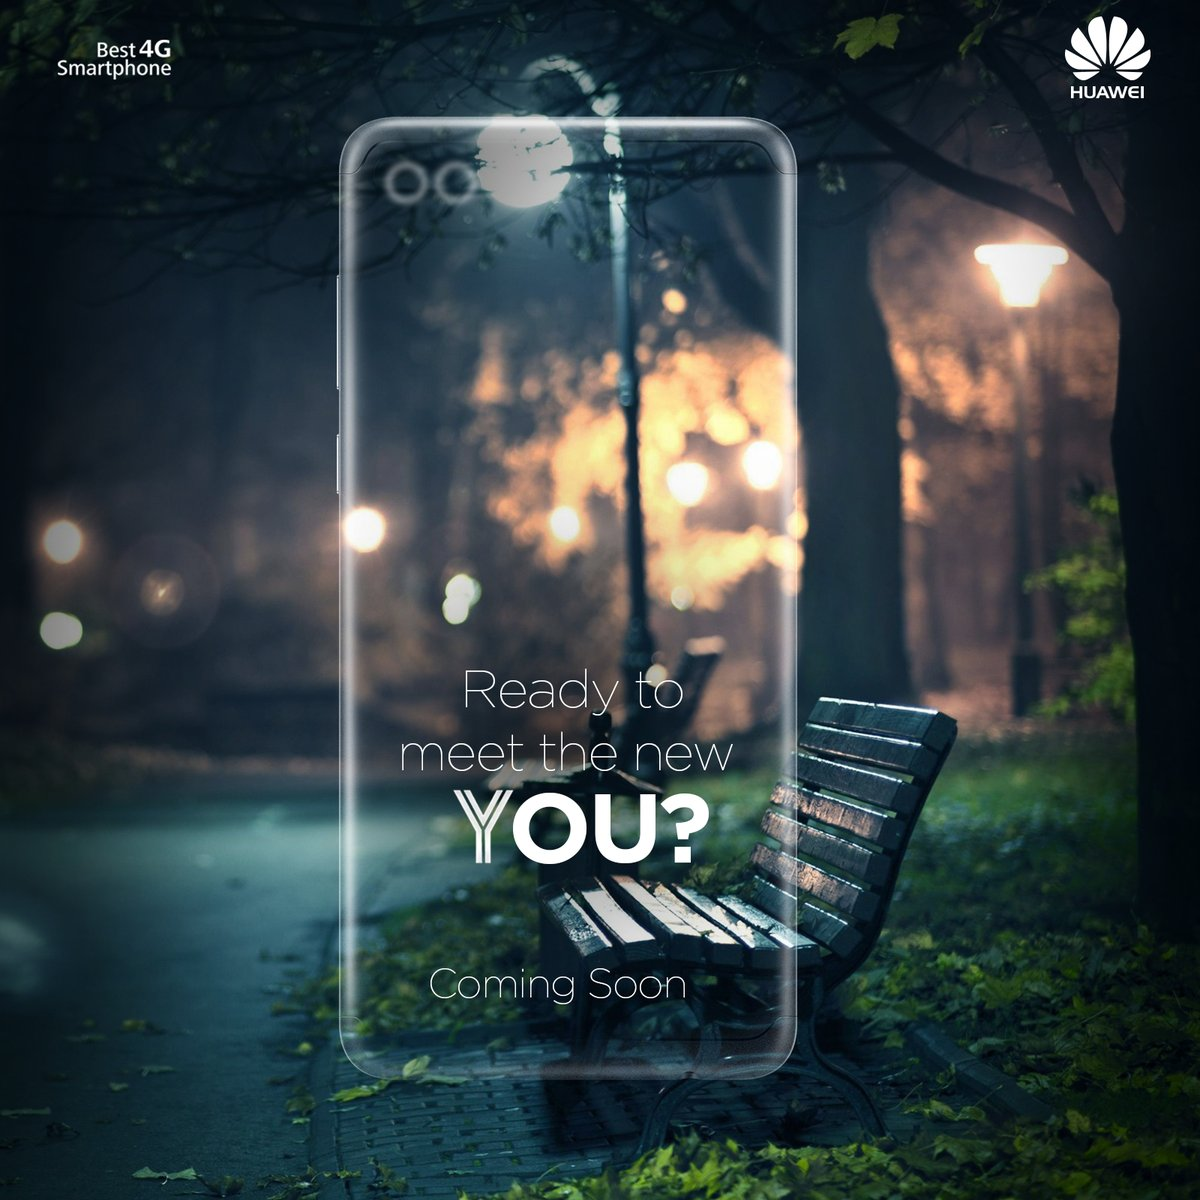 Huawei Y9 Teaser Image Leaked, Reveals dual Rear Cameras